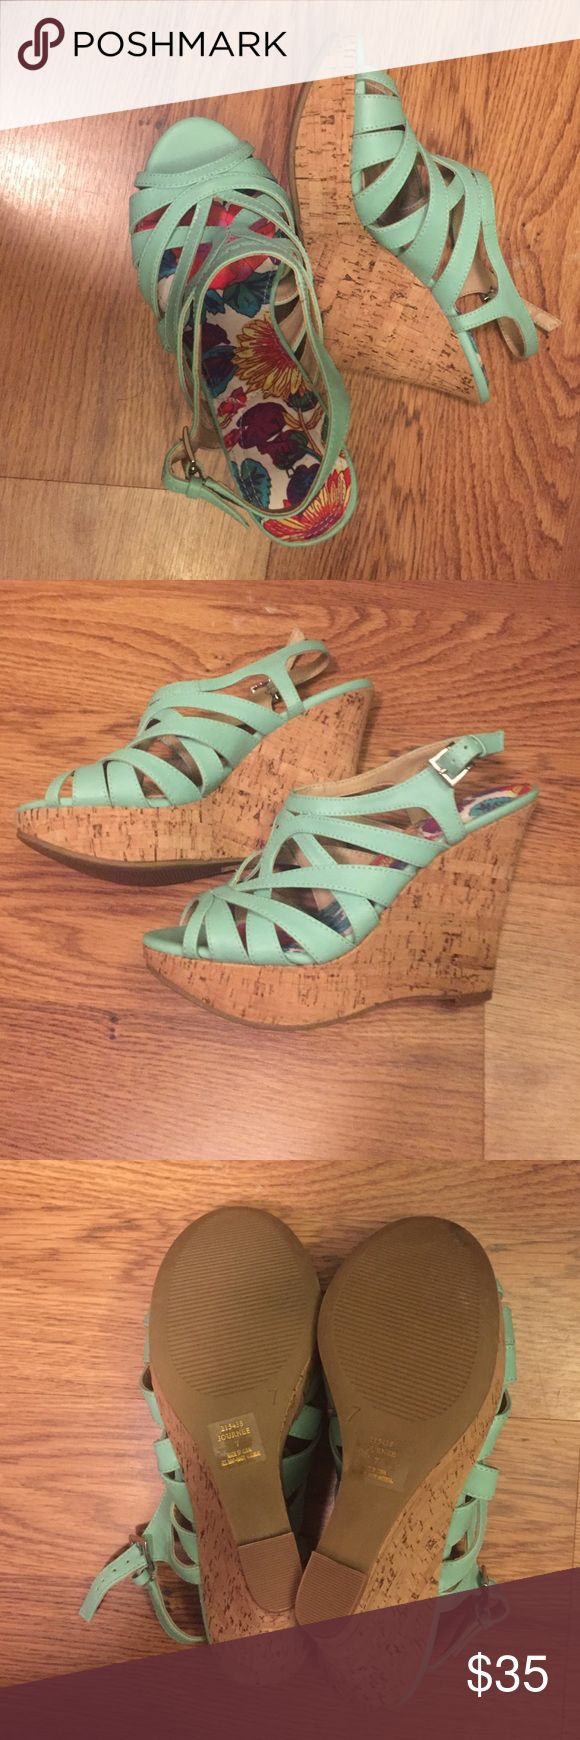 X-Appeal Teal Wedges size 7 Brand new X-Appeal wedges X-Appeal Shoes Wedges